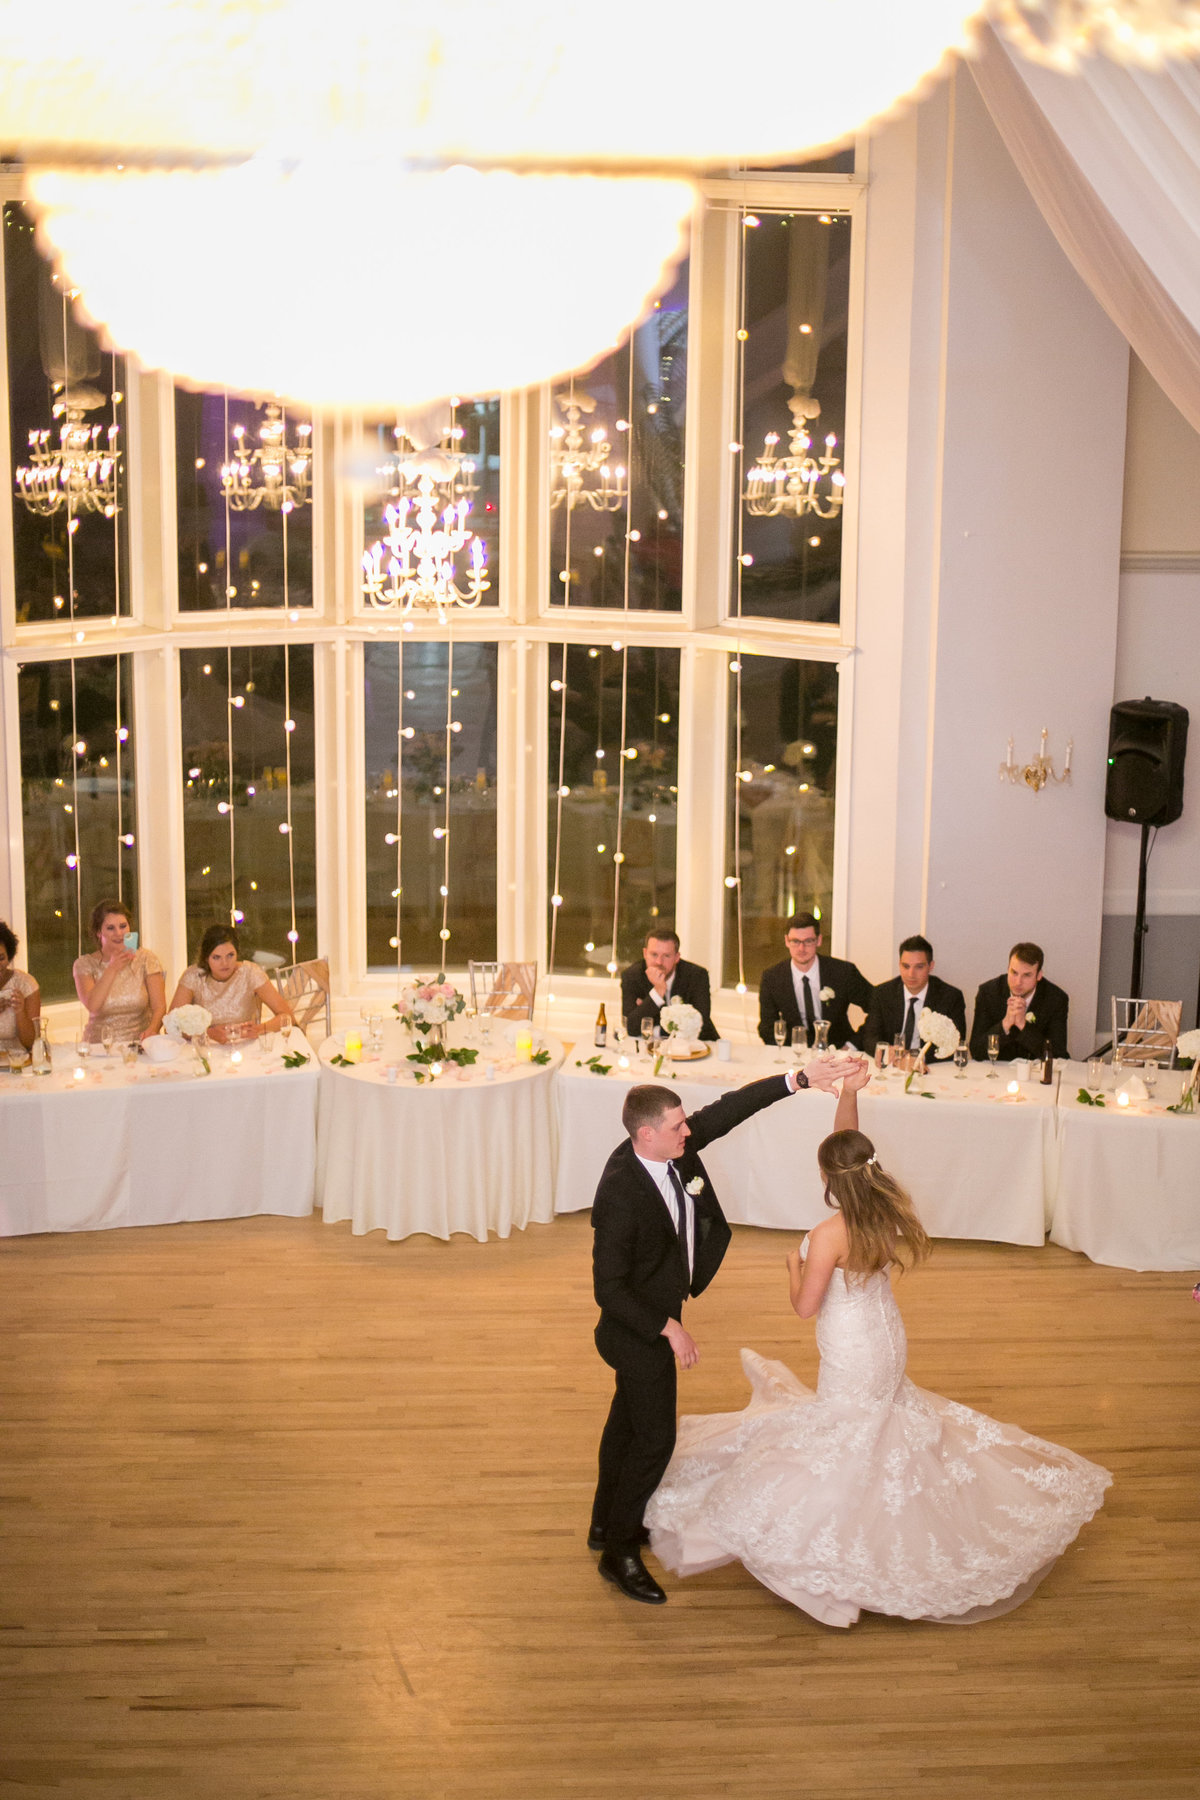 Groom spinning bride during first dance